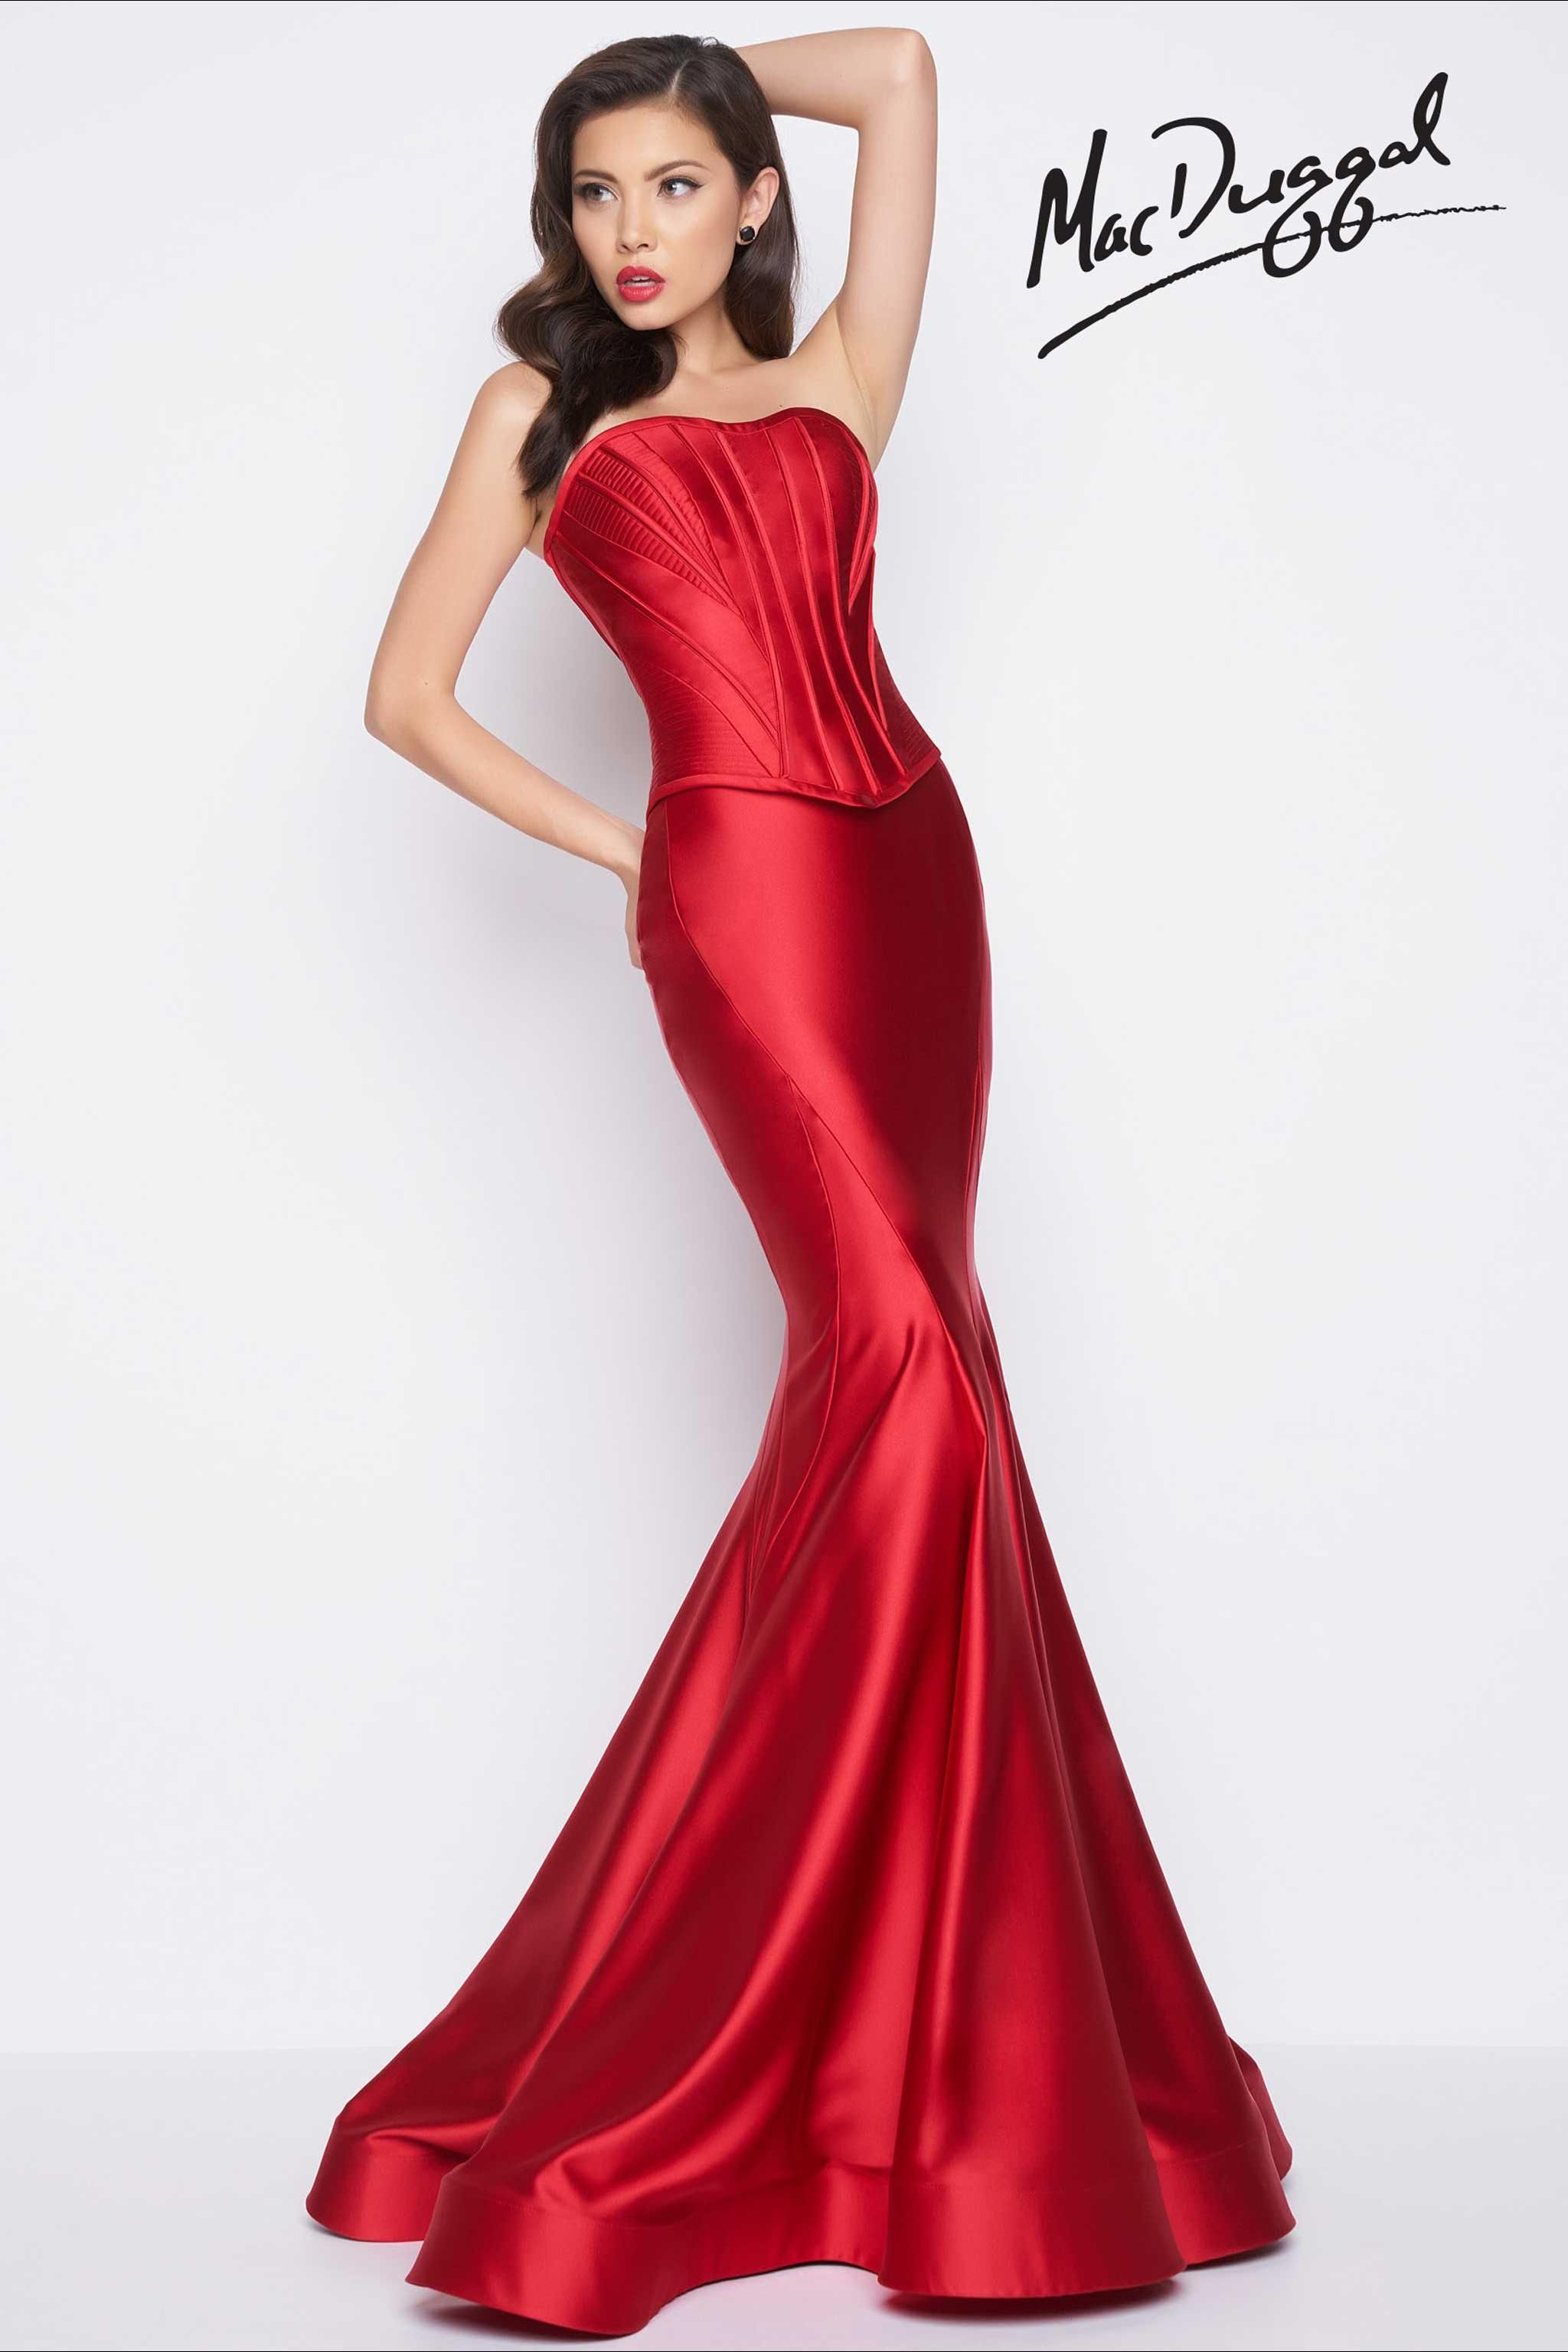 Red formal gown with mermaid skirt formalwear pinterest red